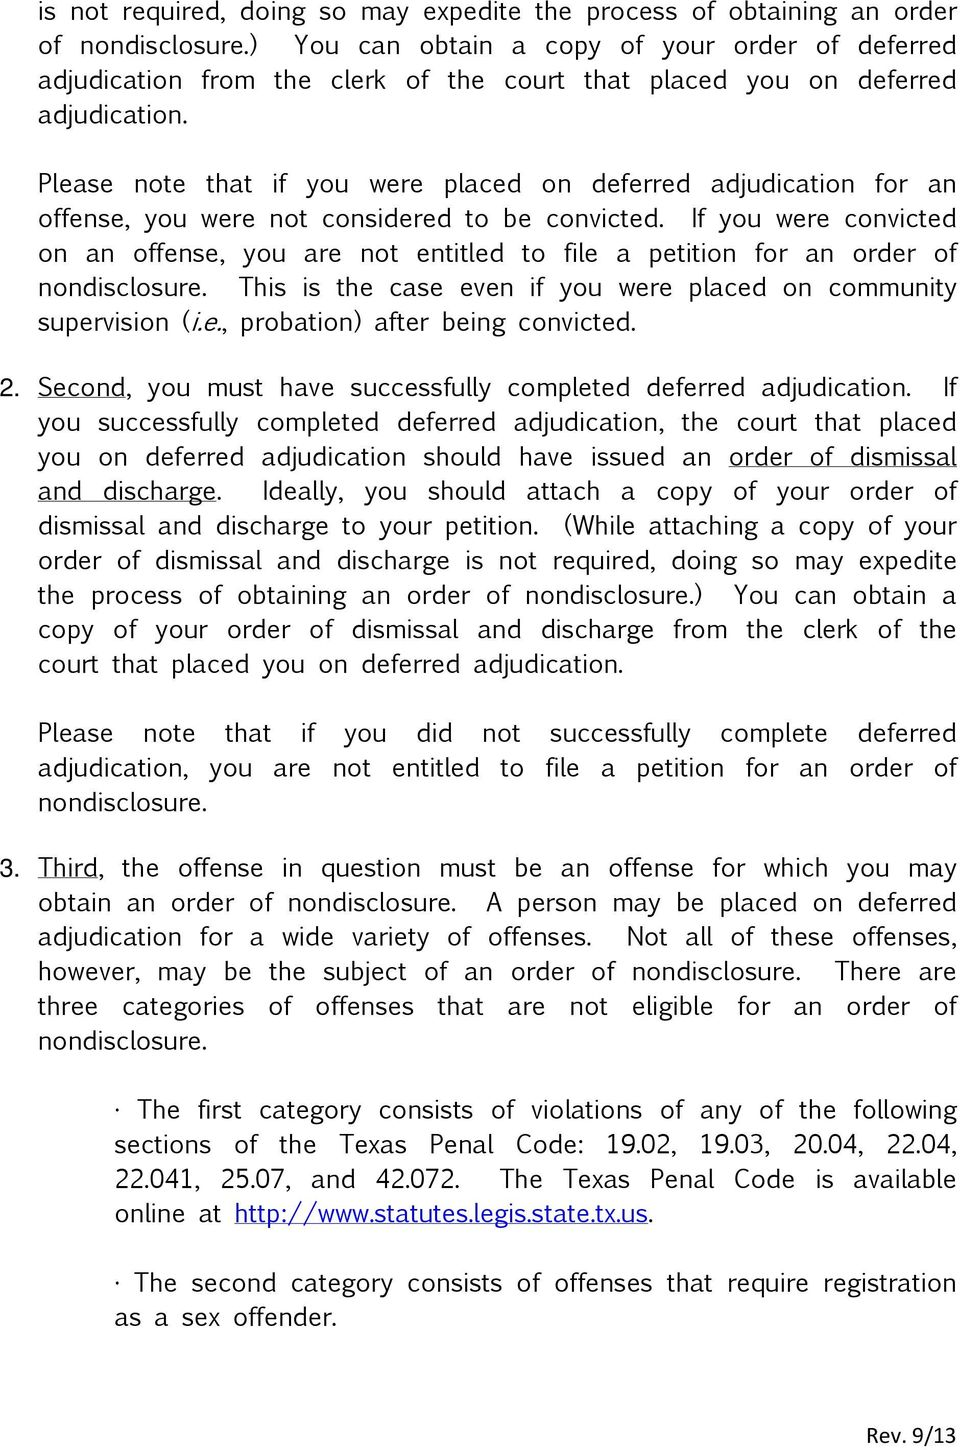 Please note that if you were placed on deferred adjudication for an offense, you were not considered to be convicted.